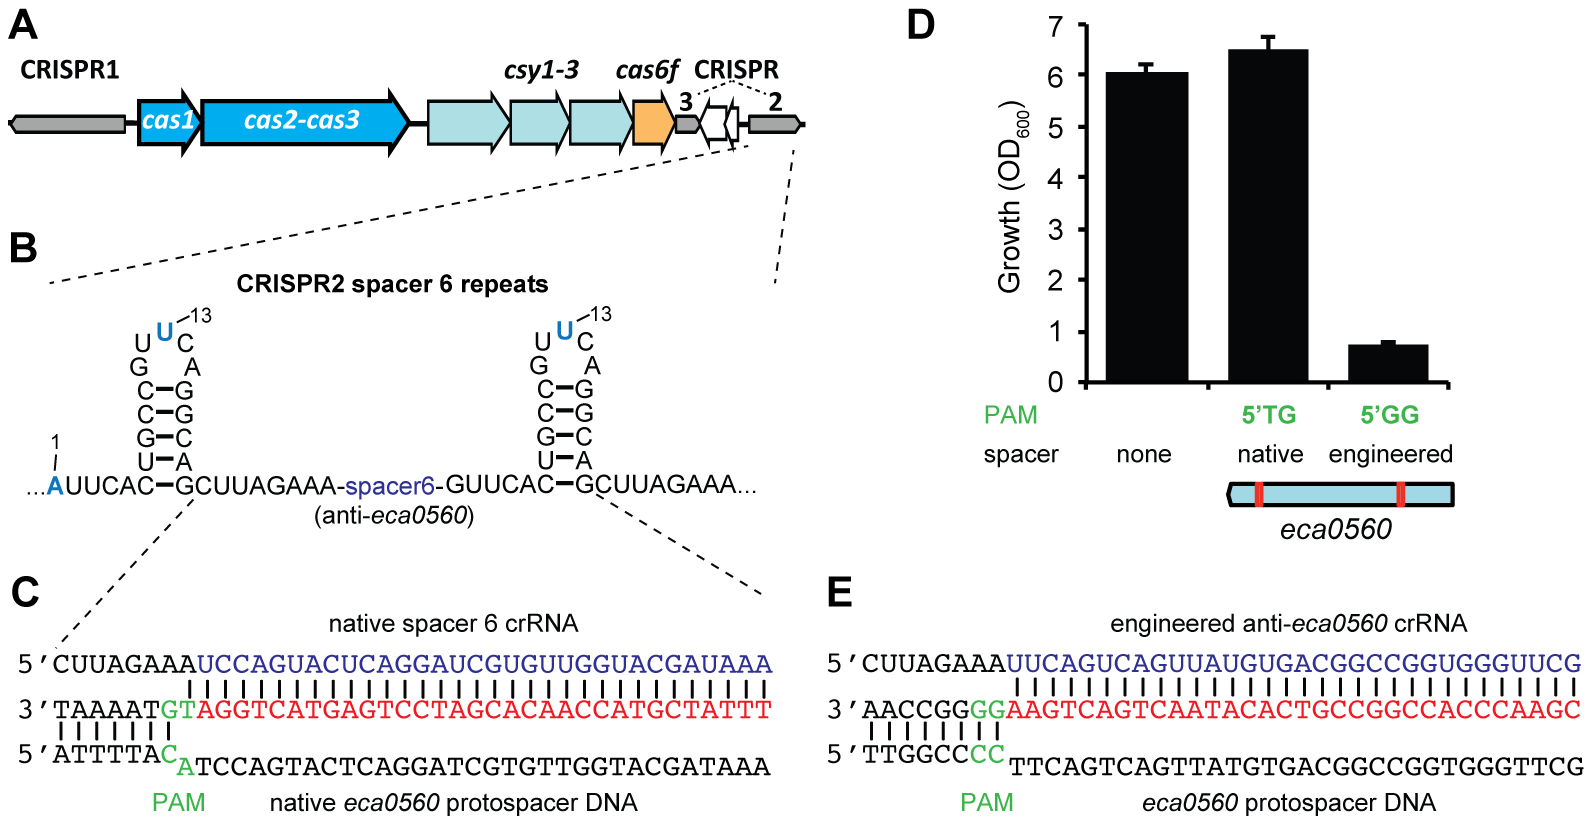 A single nucleotide PAM mutation enables escape from native CRISPR/Cas targeting.